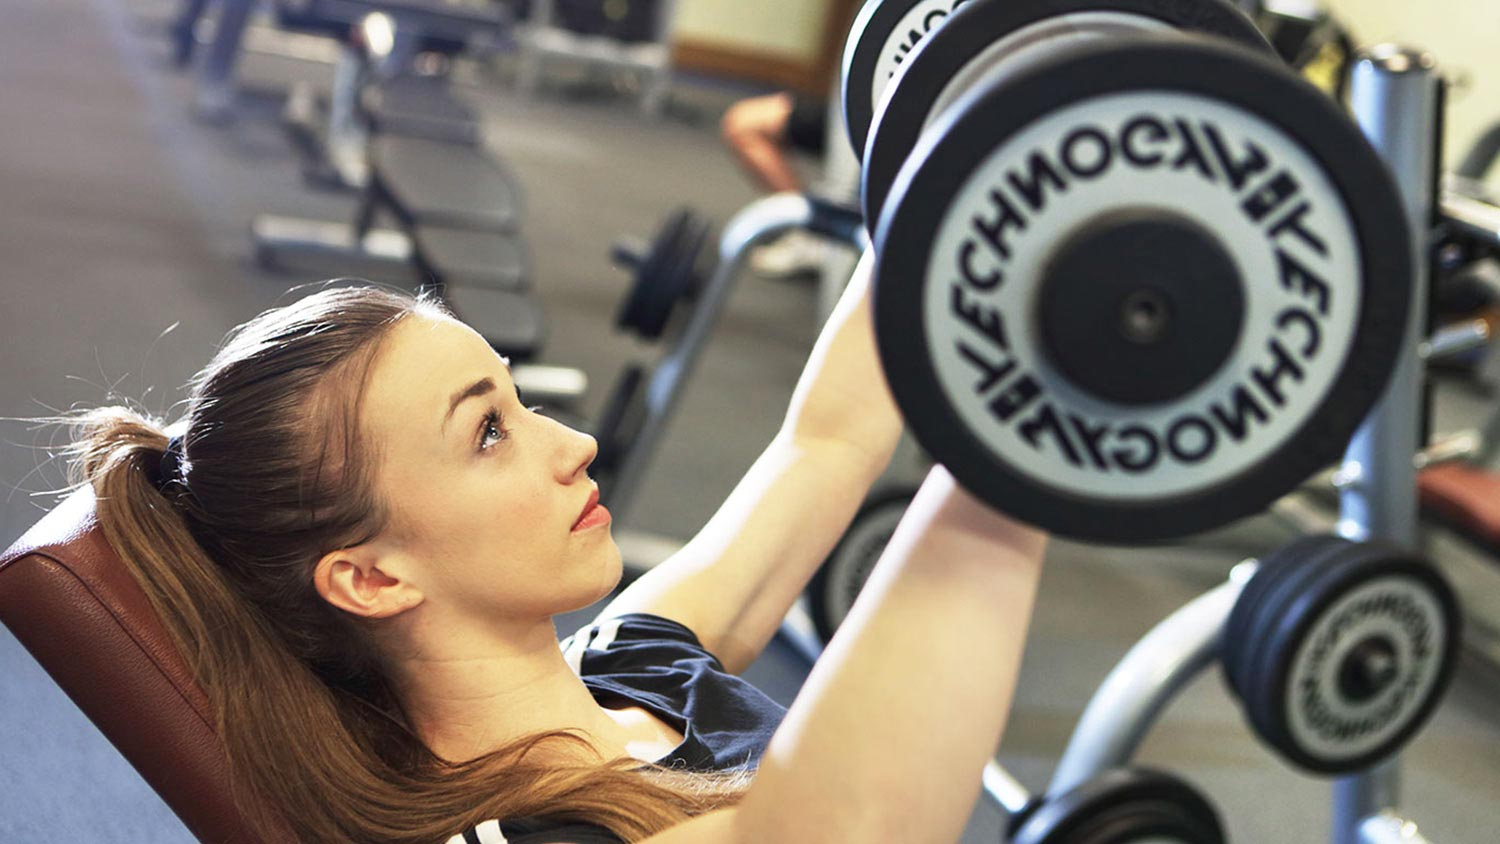 Nuffield Health Romford Fitness & Wellbeing Gym